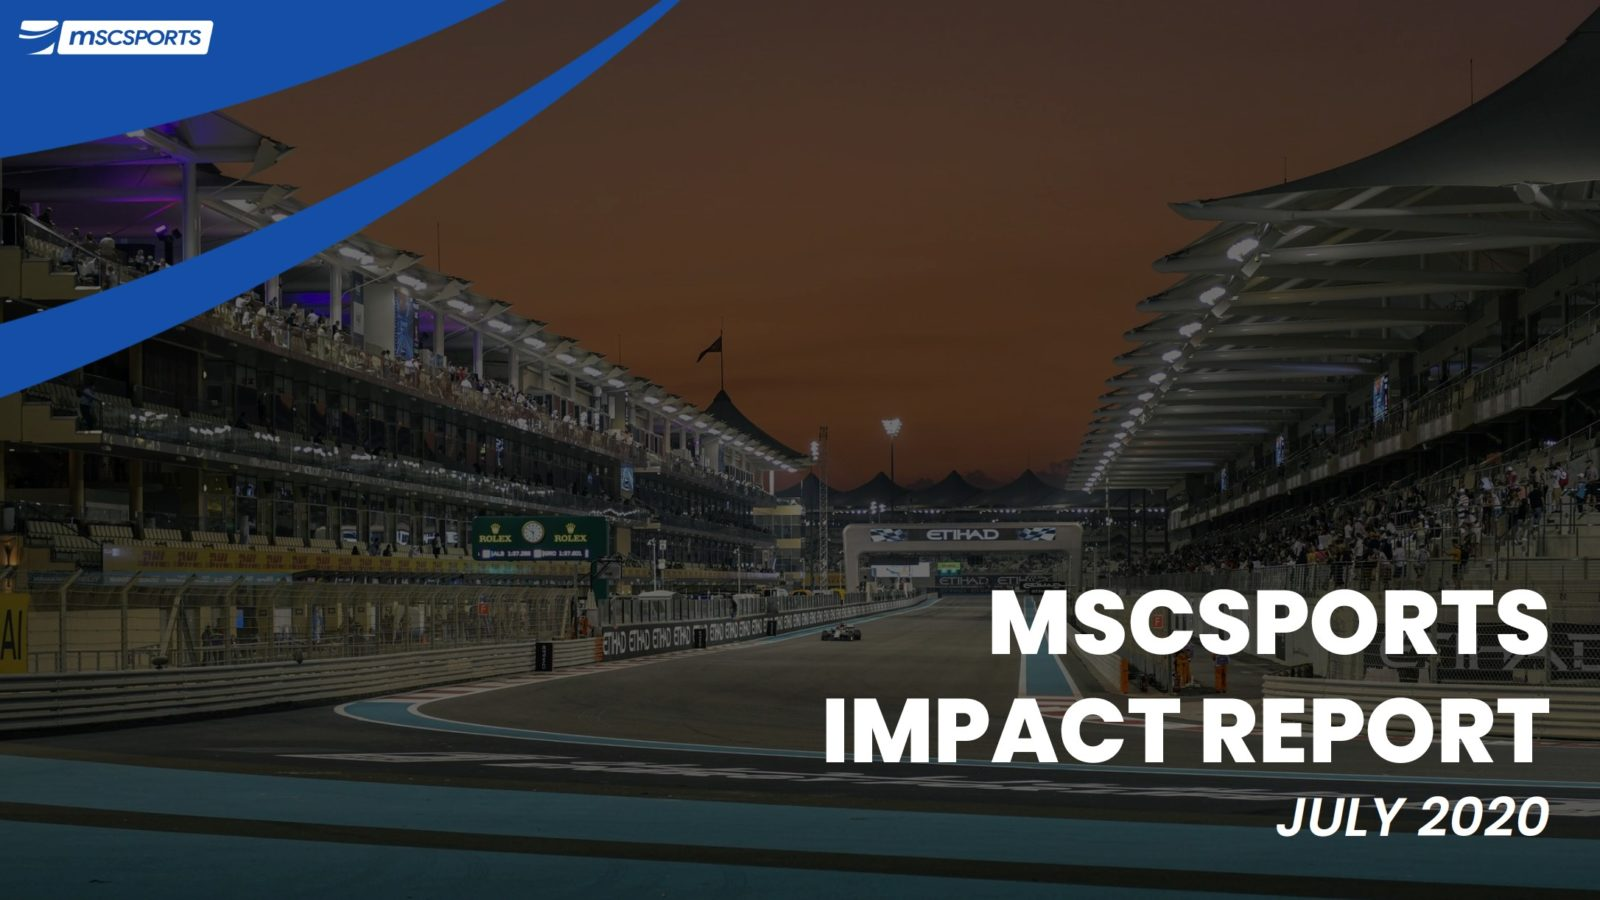 Mscsports impact report July cover